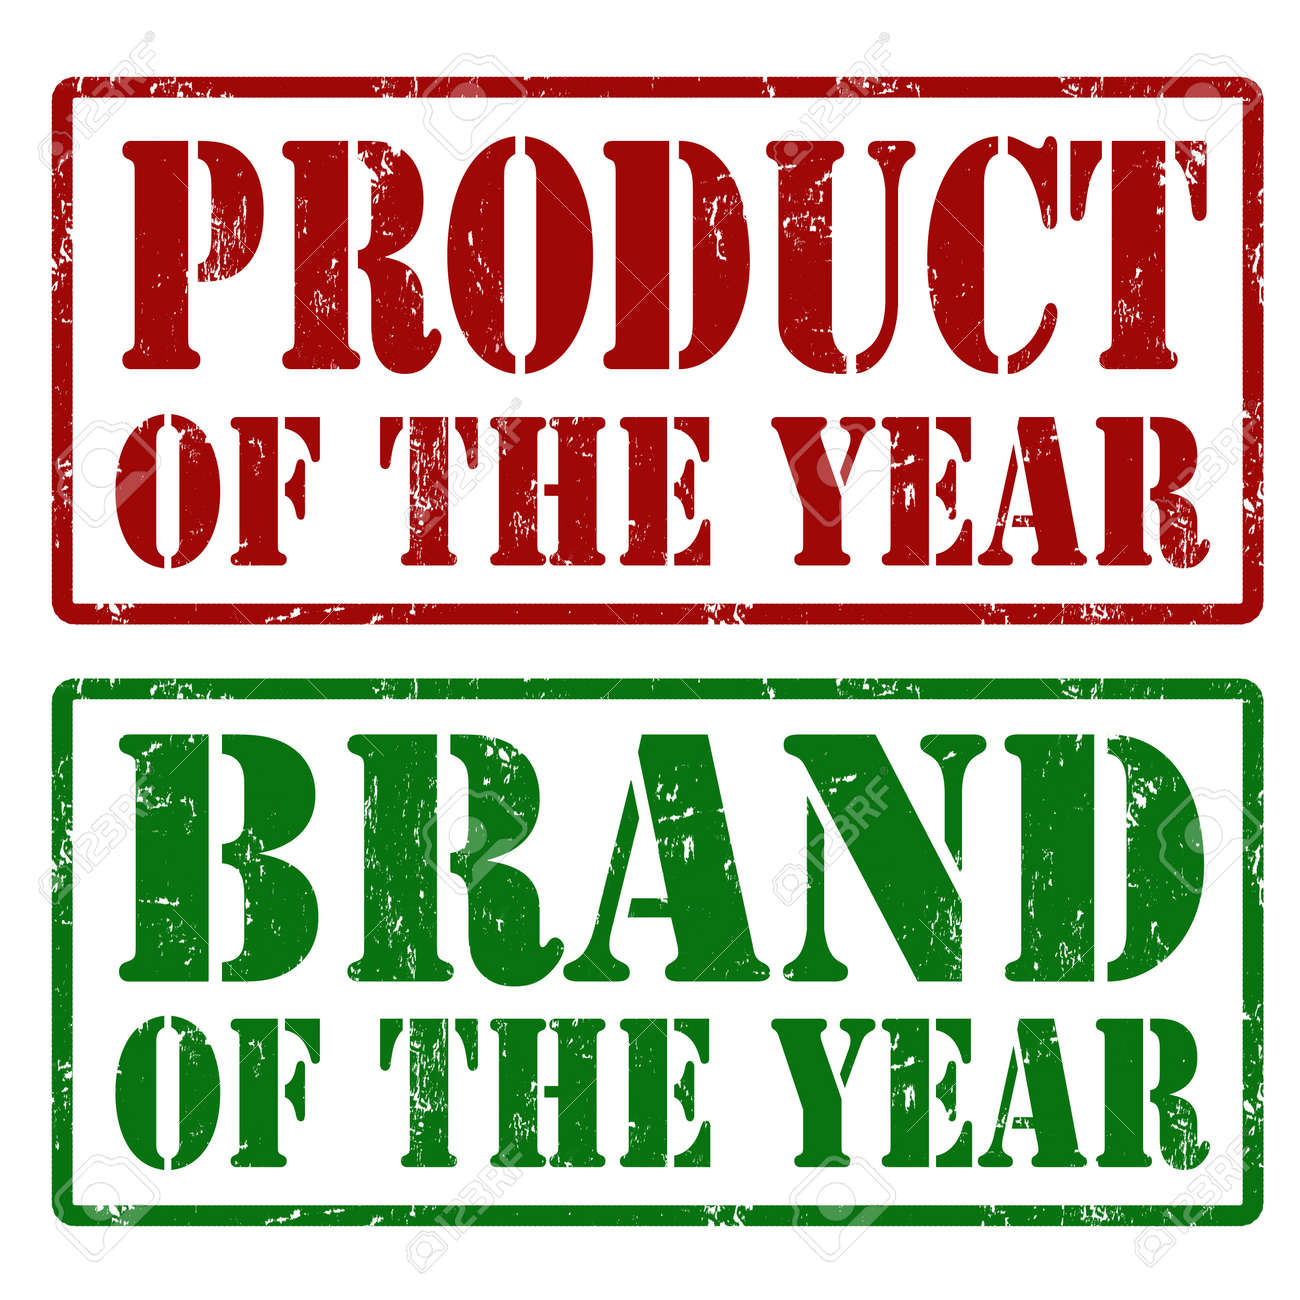 Product of the year and Brand of the year grunge rubber stamps, vector illustration Stock Vector - 22150529